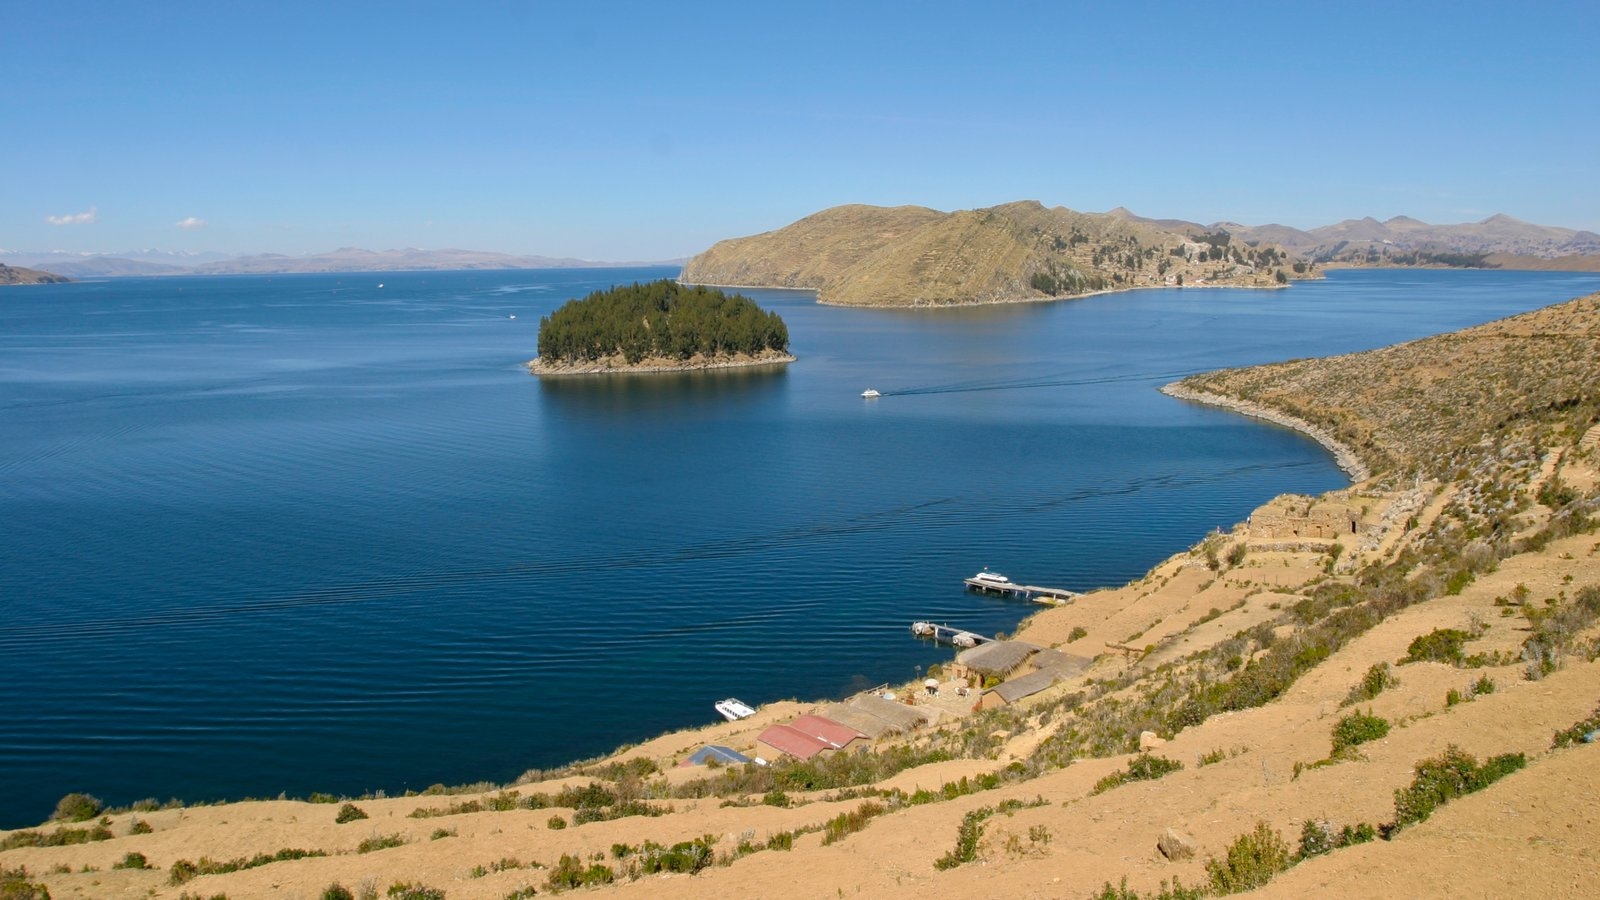 Lake Titicaca - Puno featuring general coastal views, a lake or waterhole and landscape views